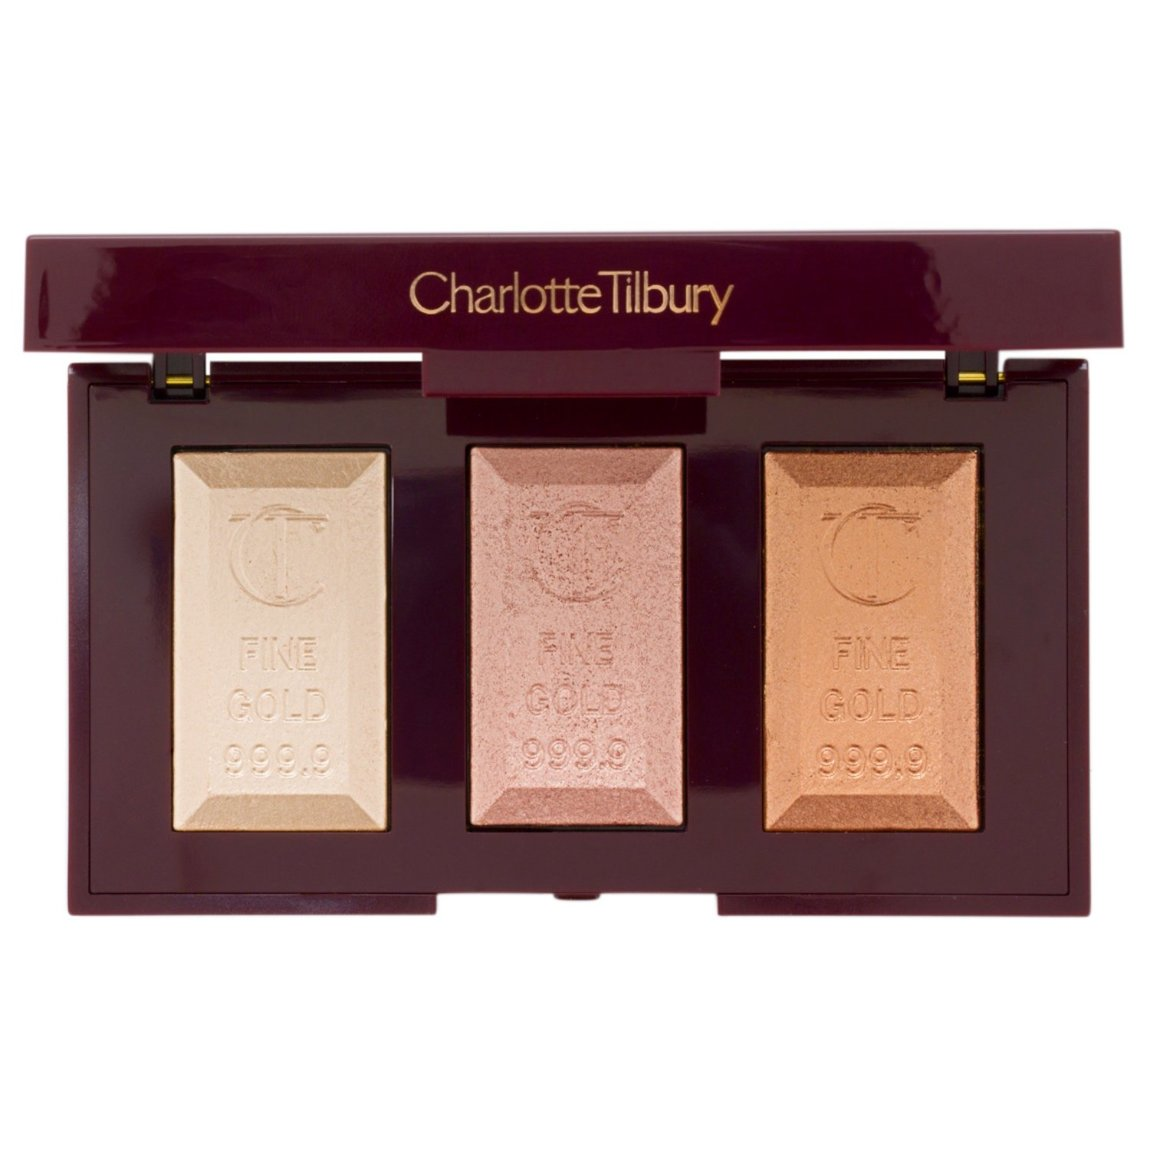 Charlotte Tilbury Bar Of Gold Palette product smear.